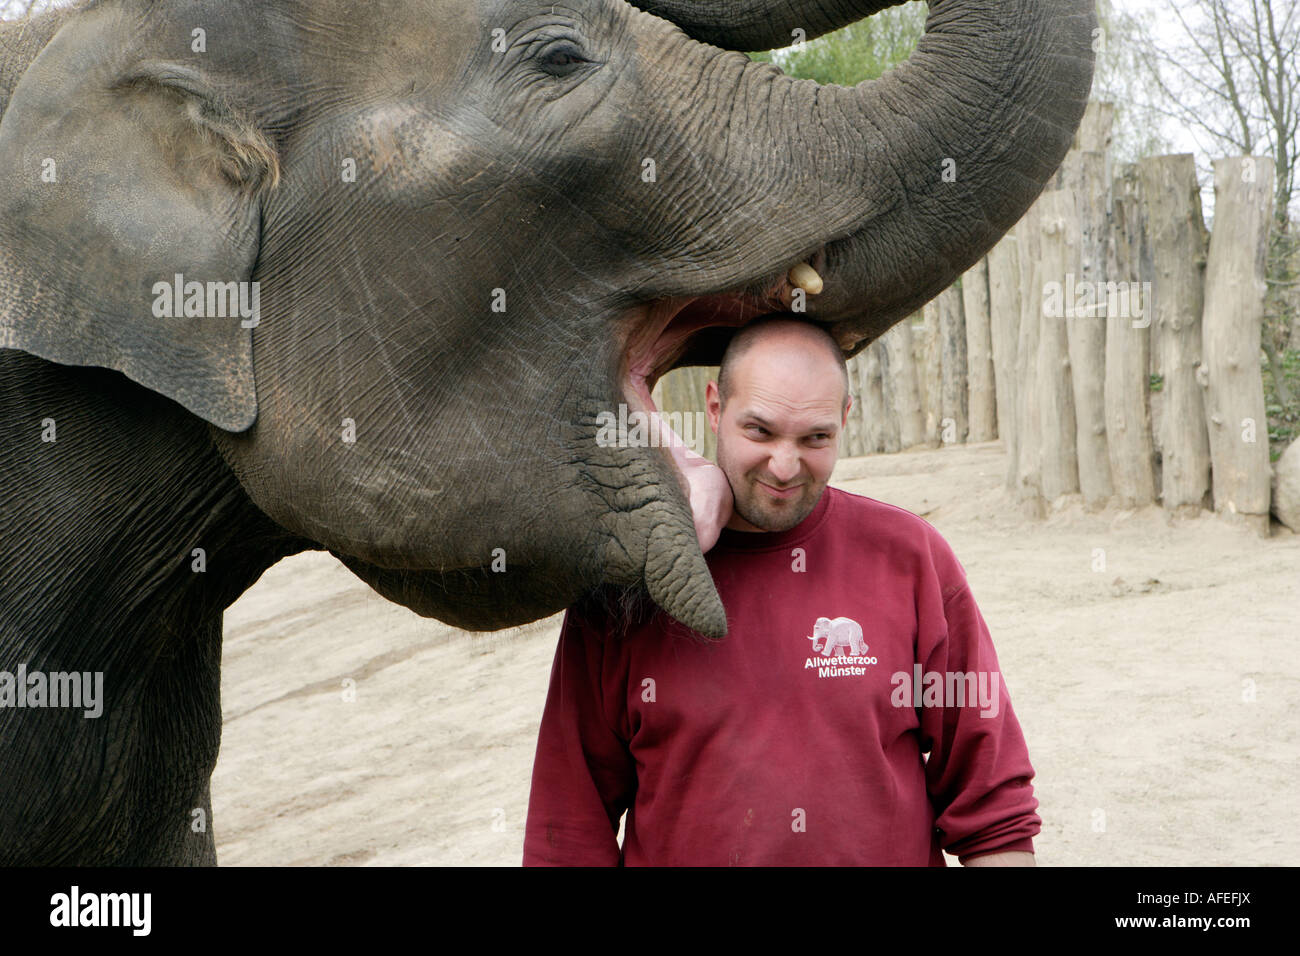 The zoo keeper Uwe Schneider gets a kiss of the elephant CORNY - Stock Image